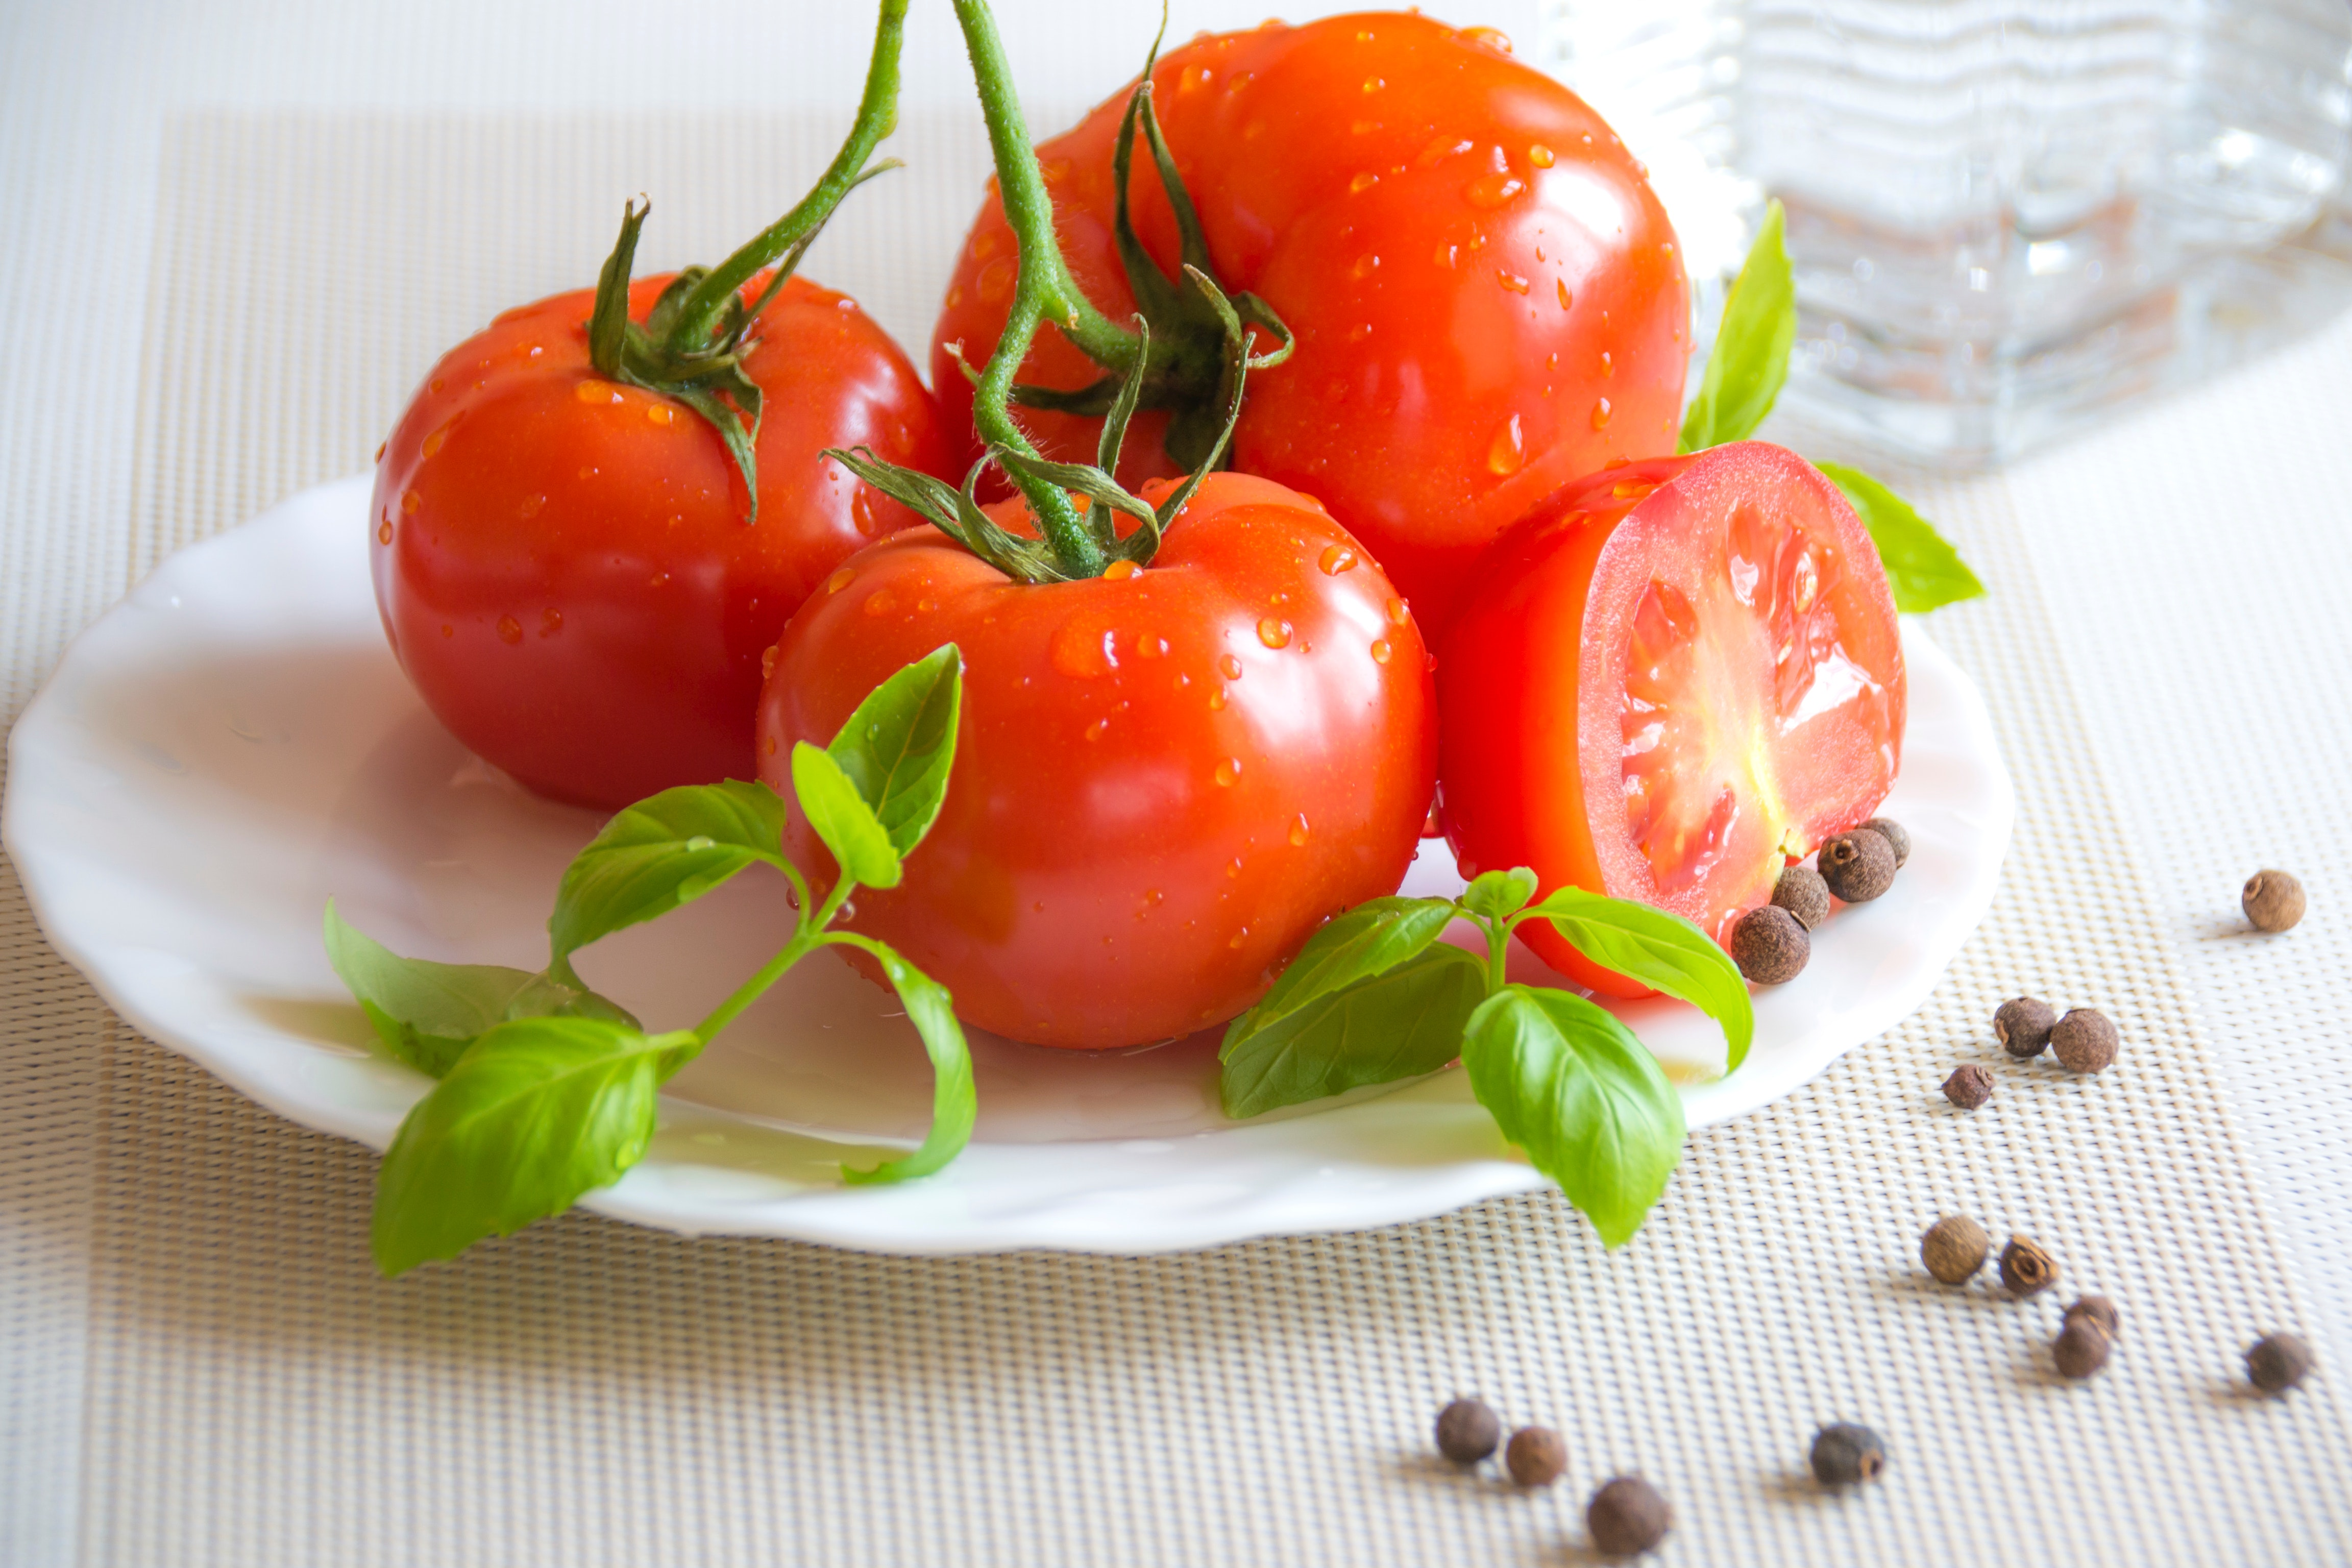 Tomatoes Has Many Health Benefits - Know Some Of Them